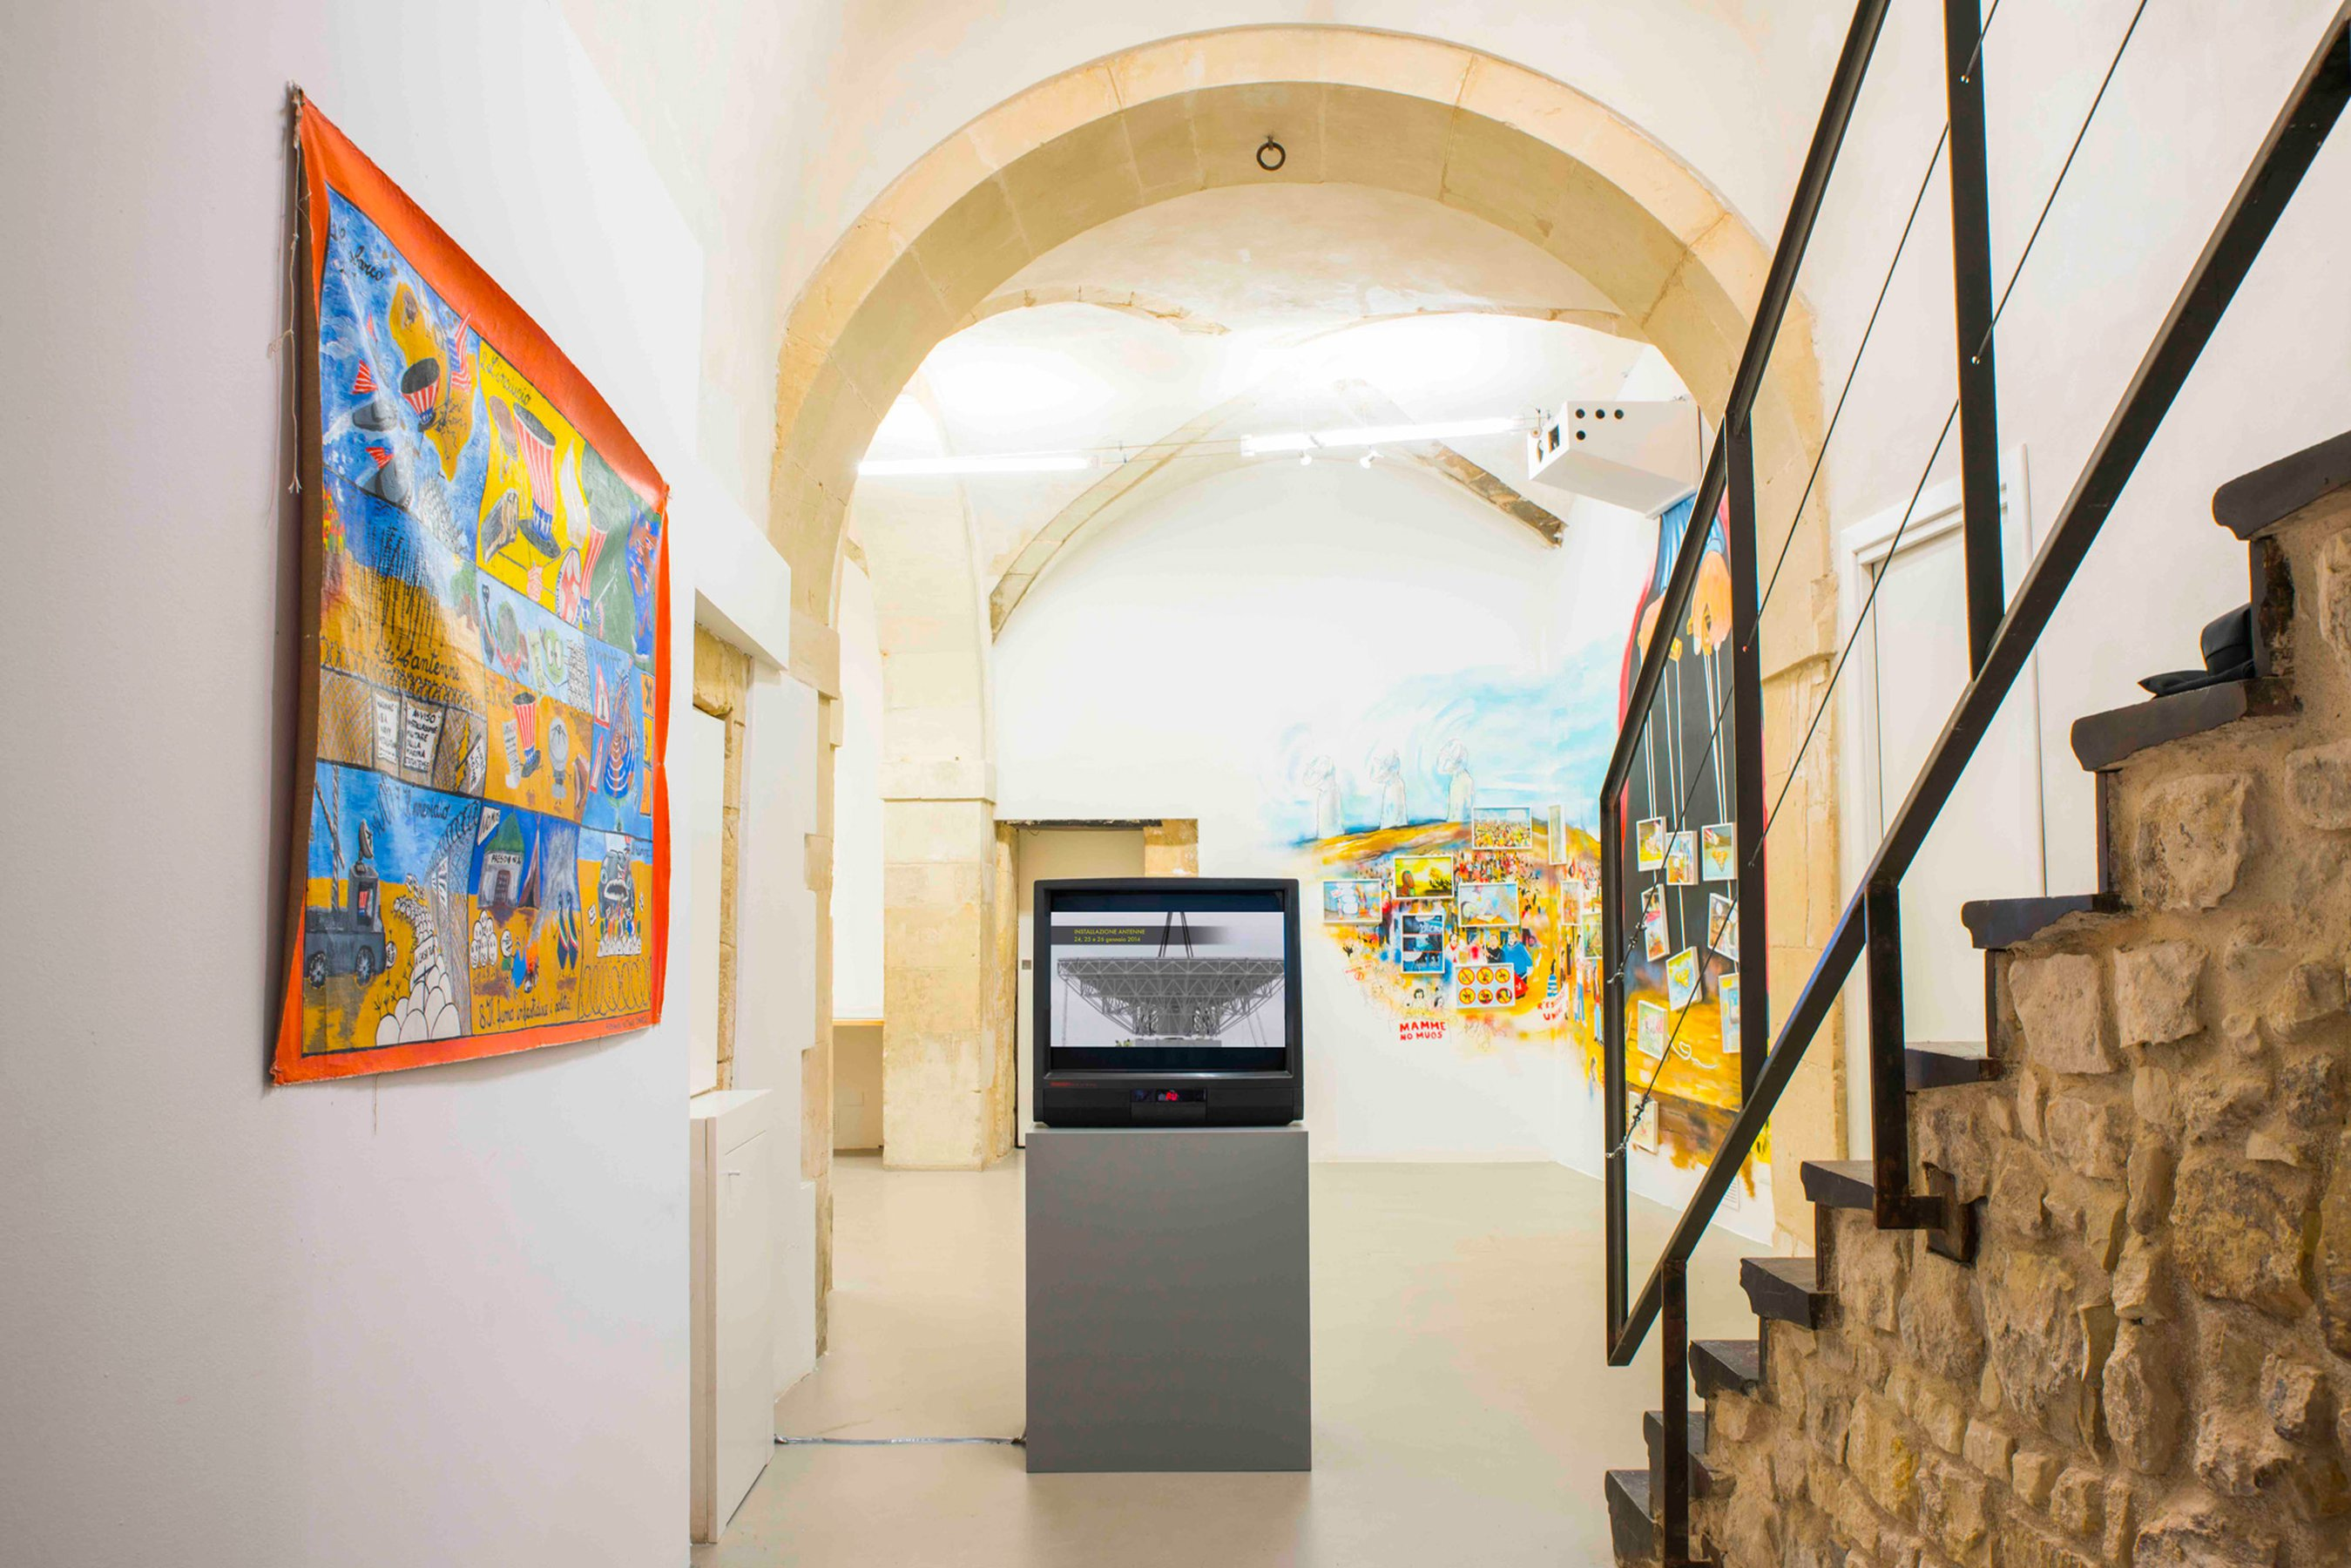 Artists Against Muos Installation view at Laveronica Arte Contemporanea, 2017 ph. Francesco Di Giovanni